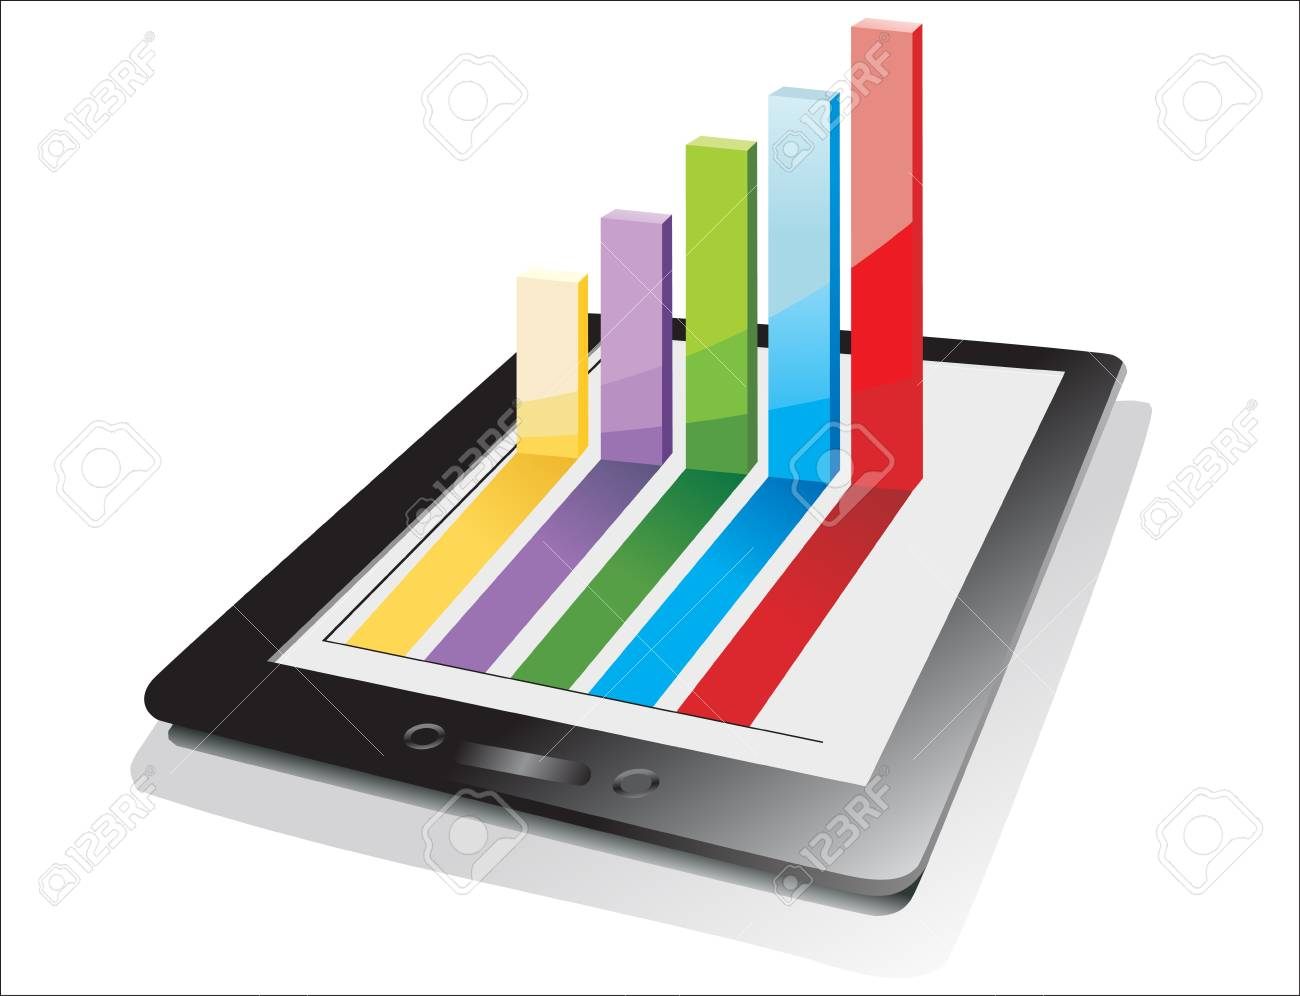 computer tablet showing a spreadsheet with some 3d charts over it Stock Vector - 17207245